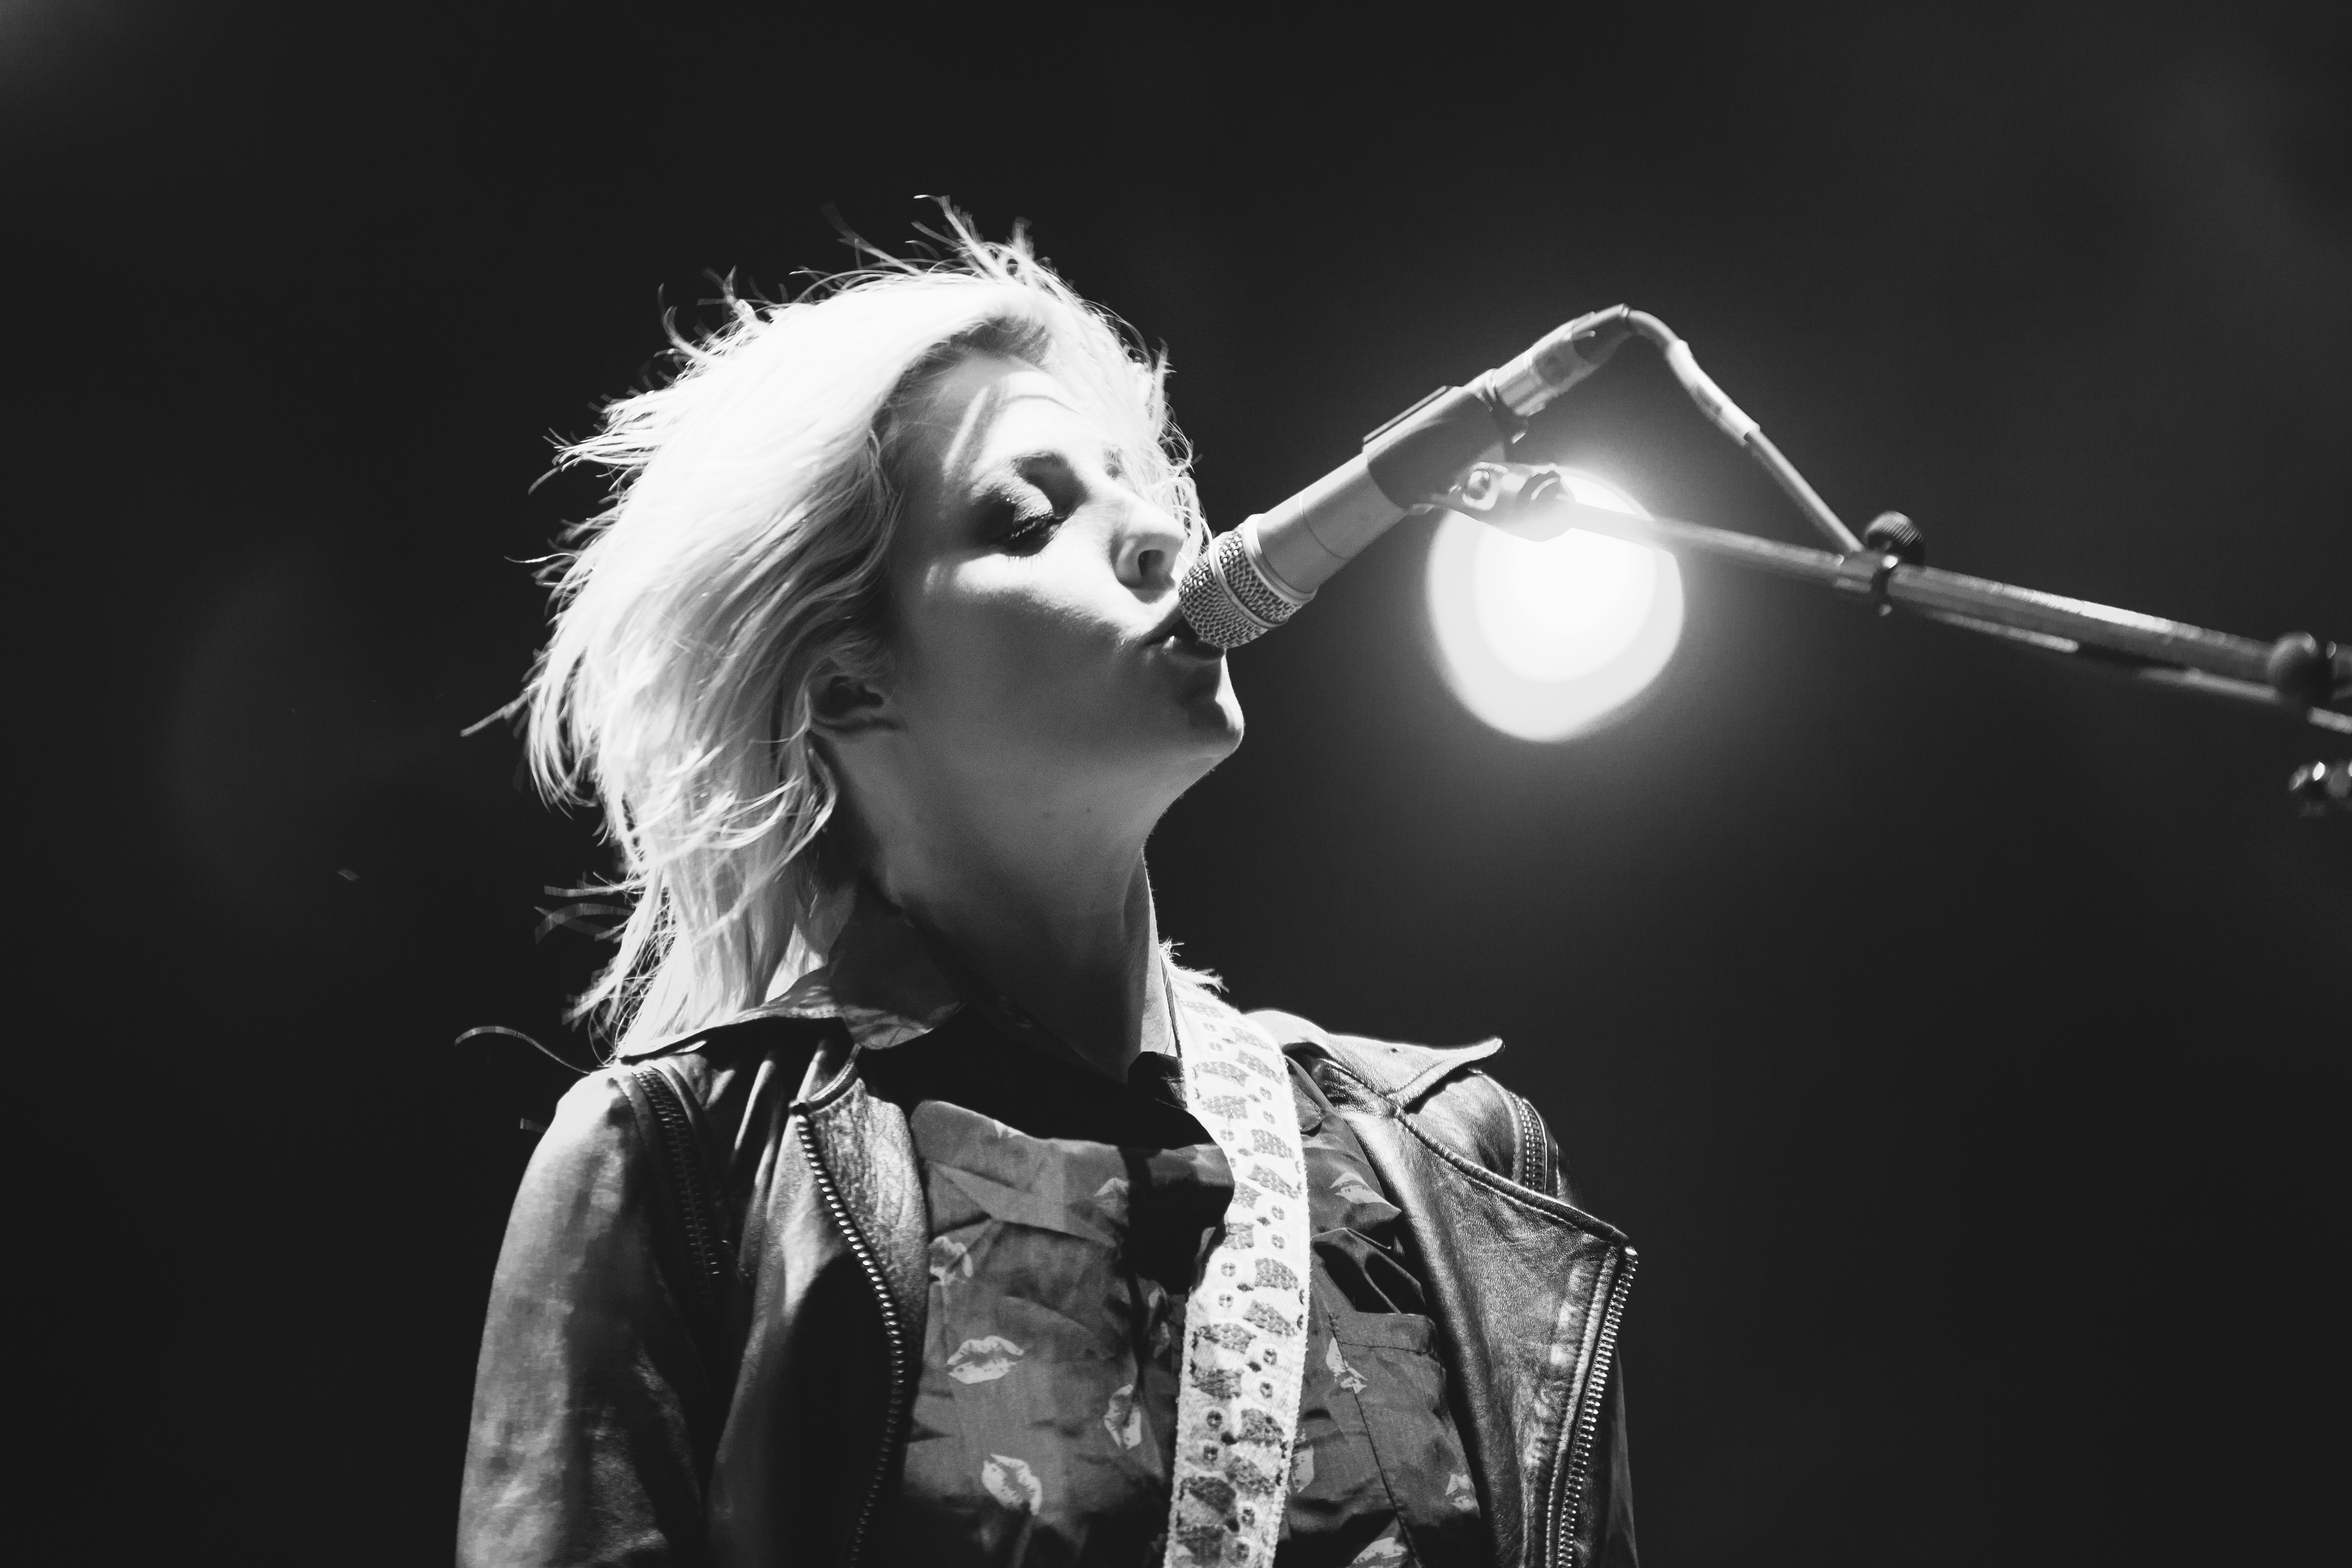 Brody Dalle And Courtney Love Images & Pictures - Becuo